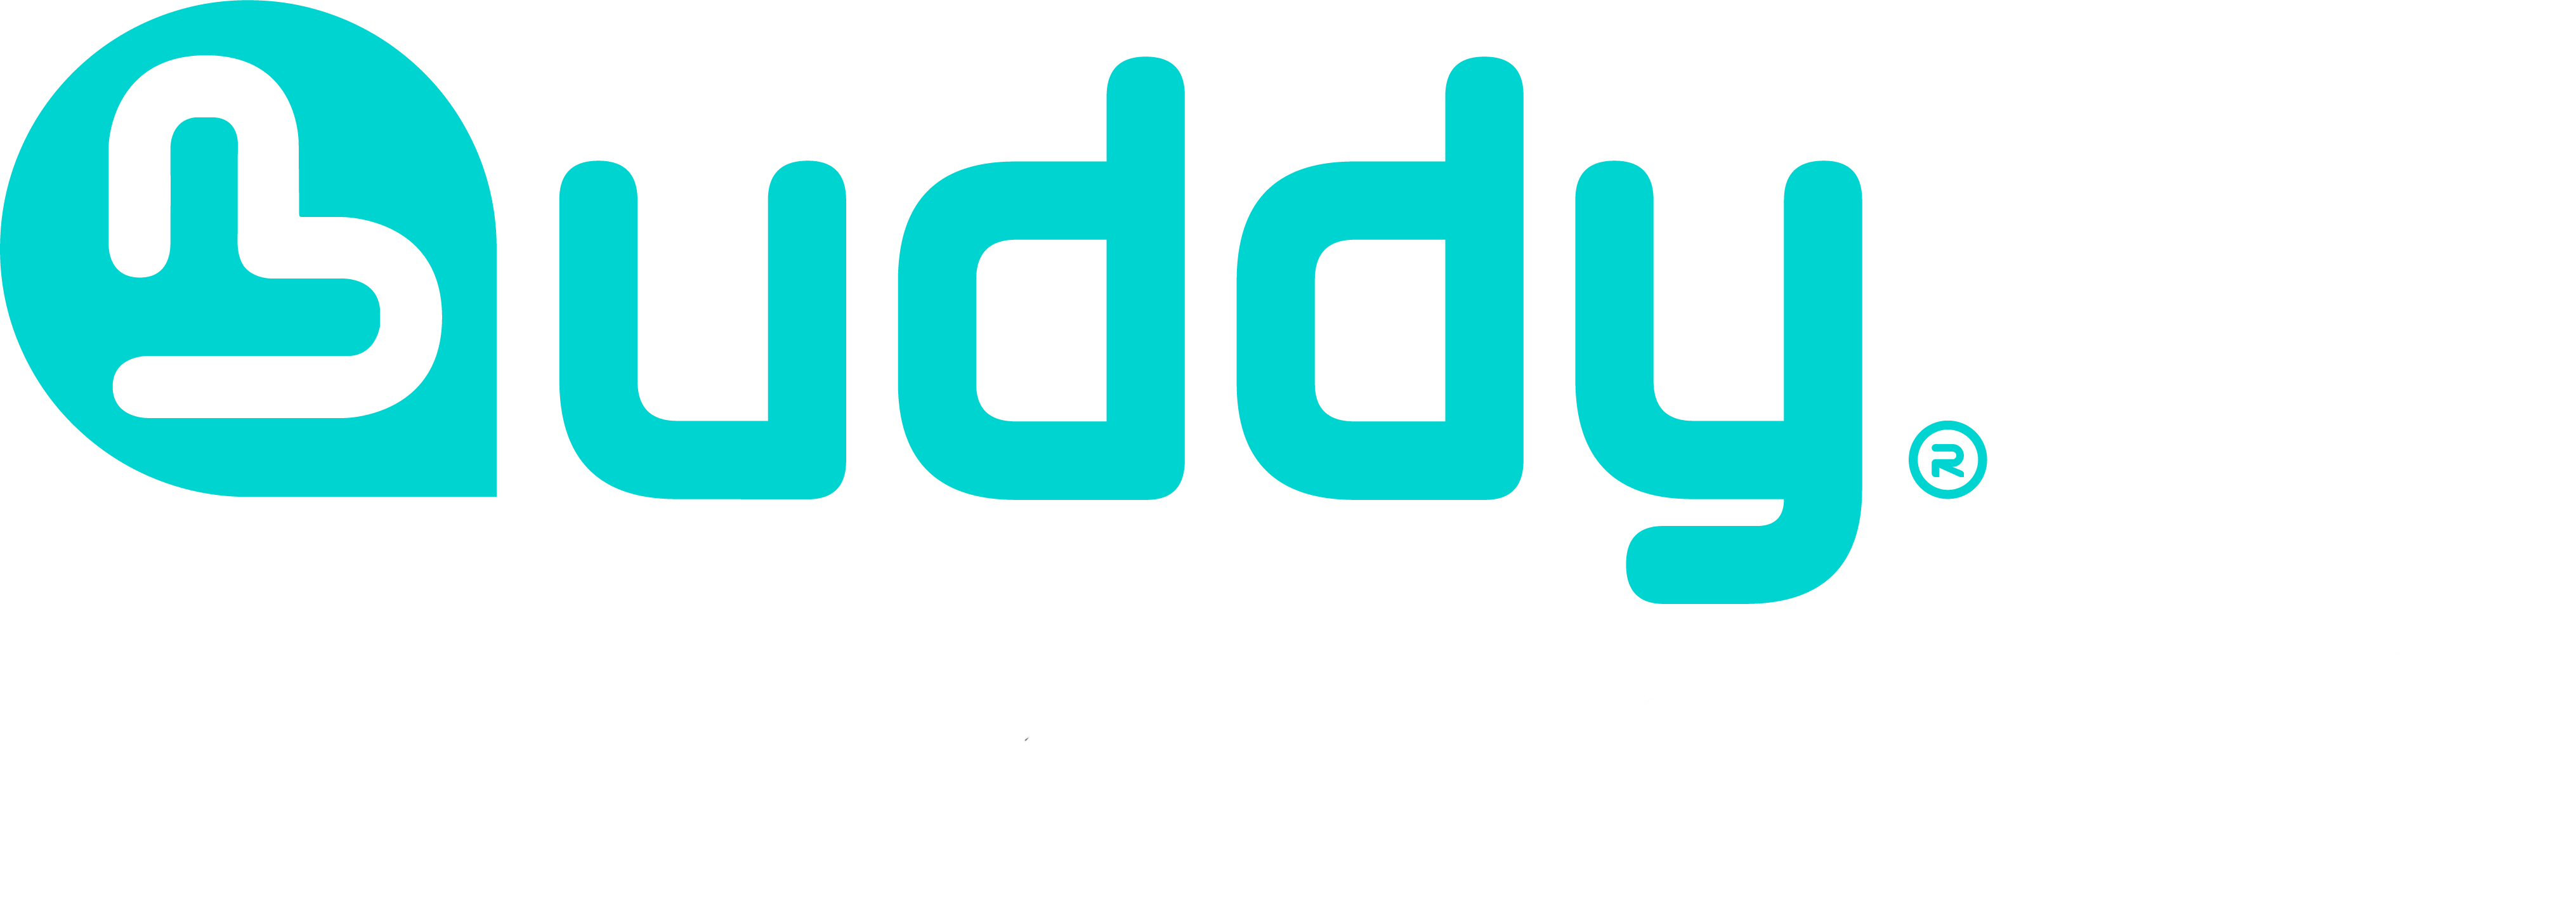 BUDDY the Emotional Robot